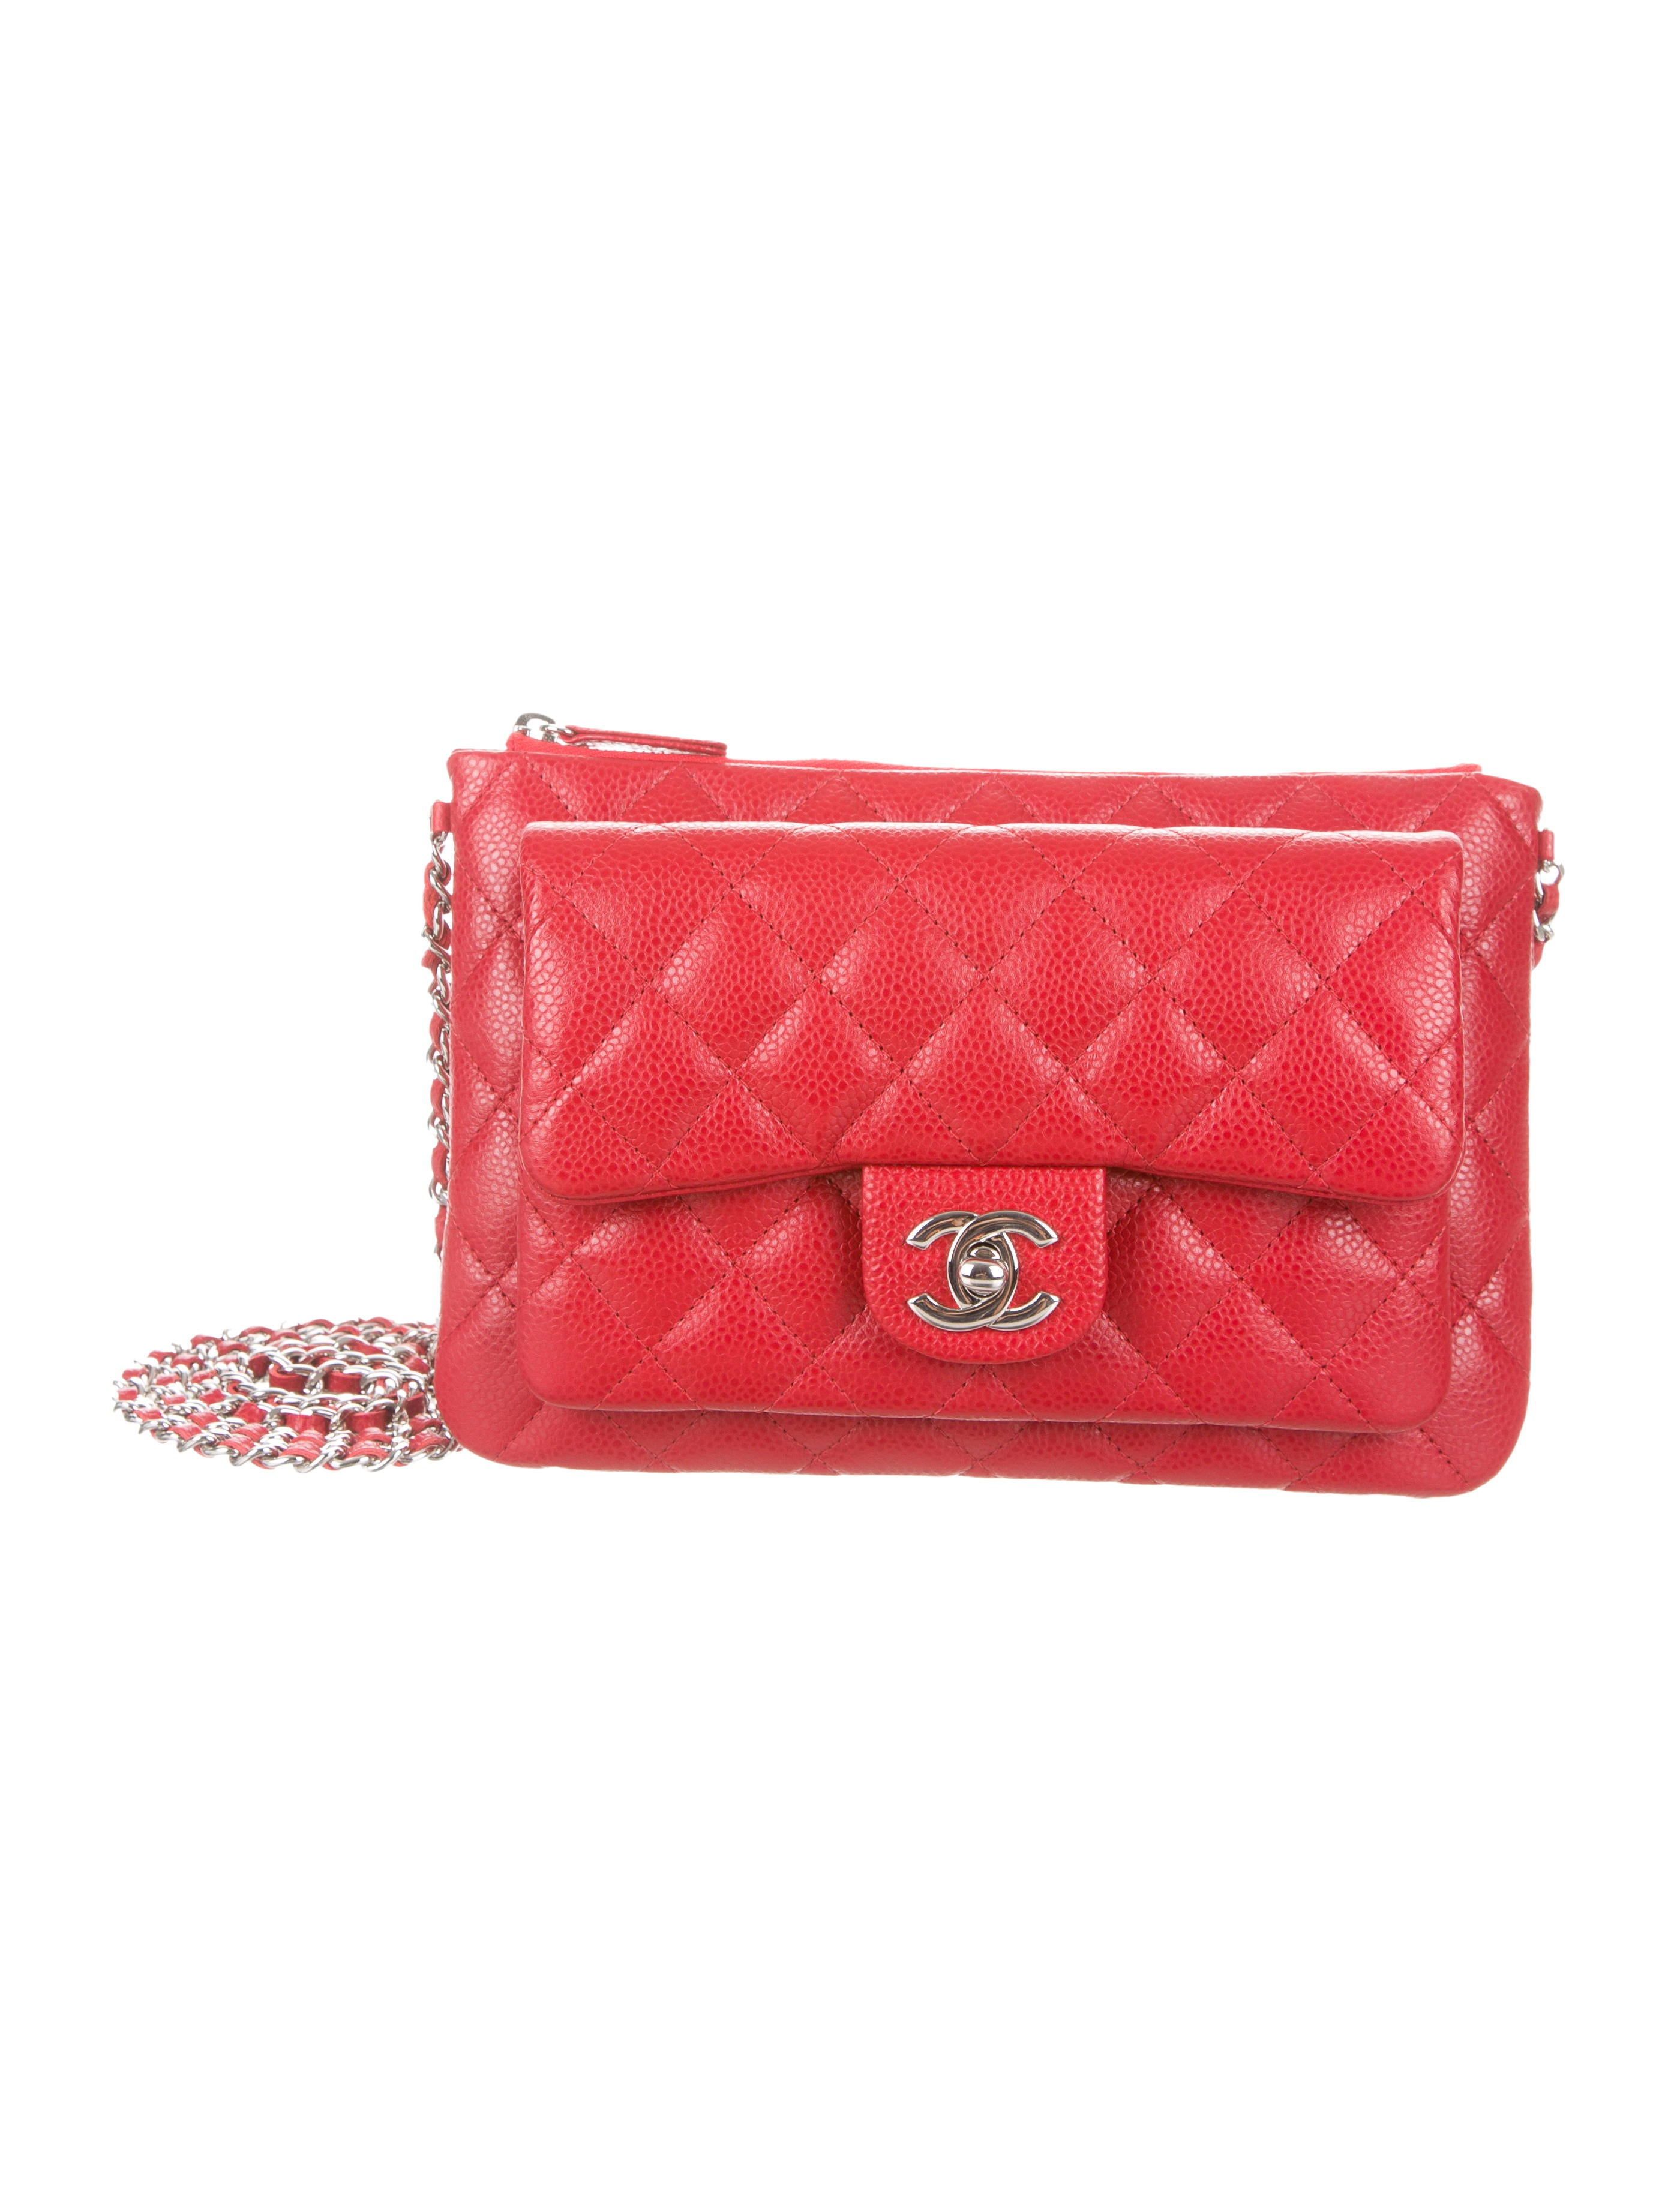 Chanel Quilted Daily Zippy Crossbody Bag - Handbags - CHA87211   The ... b4a29a54f1